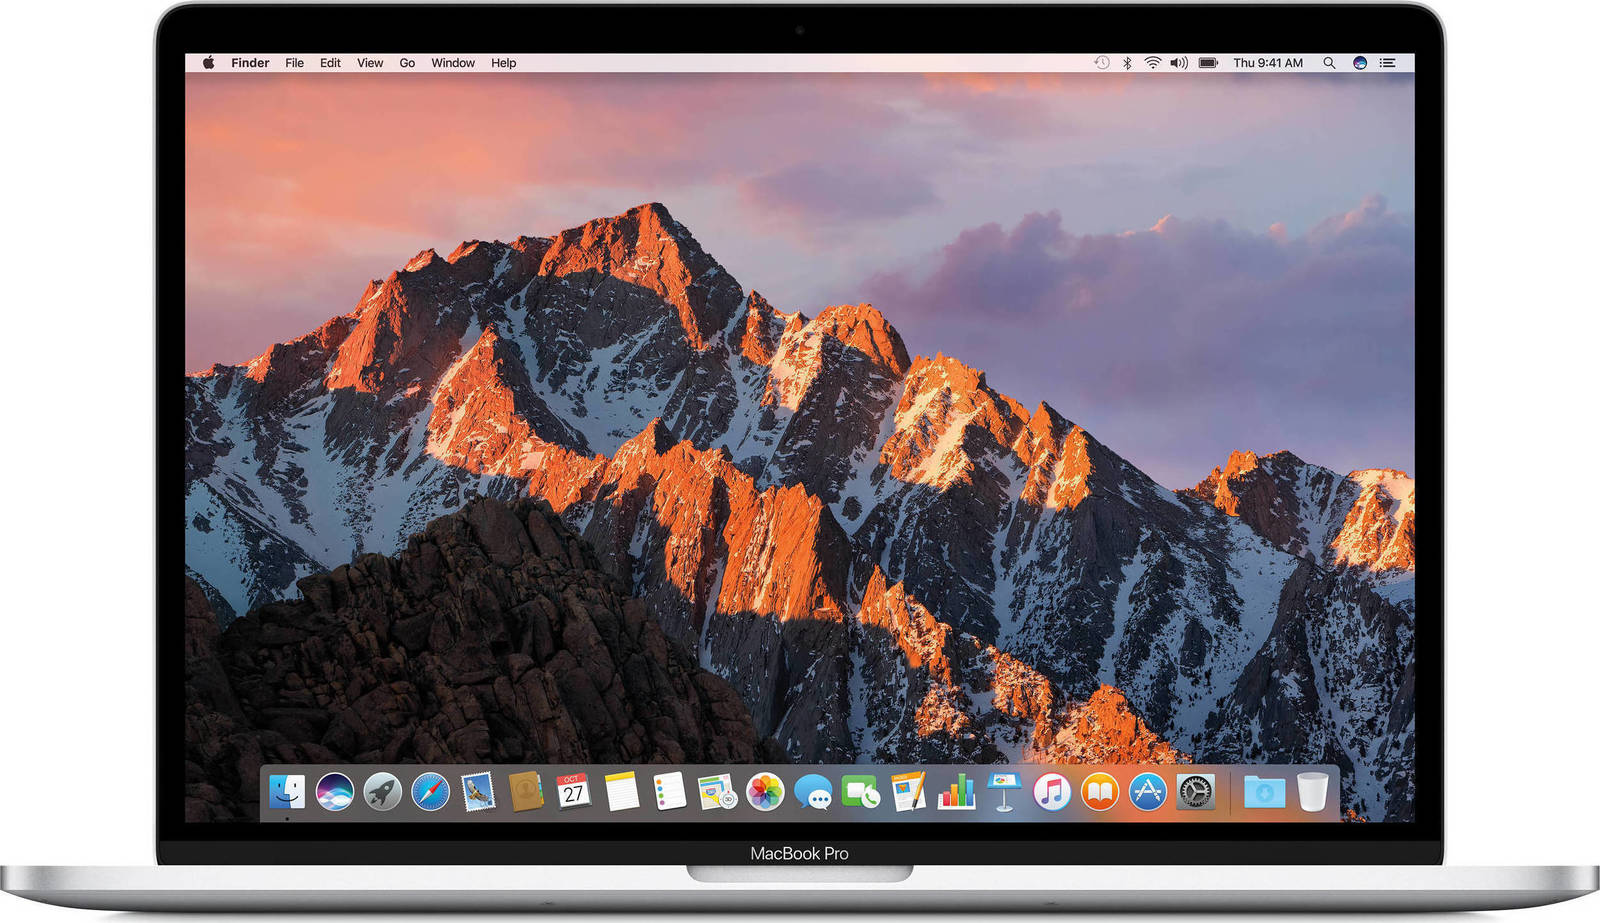 Apple MacBook Pro MPTU2 15.4'' 2.8GHz i7/16GB/256GB With Touch Bar 2017 Silver English Keyboard Με Αντάπτορα Πληρωμή έως 24 δόσεις*